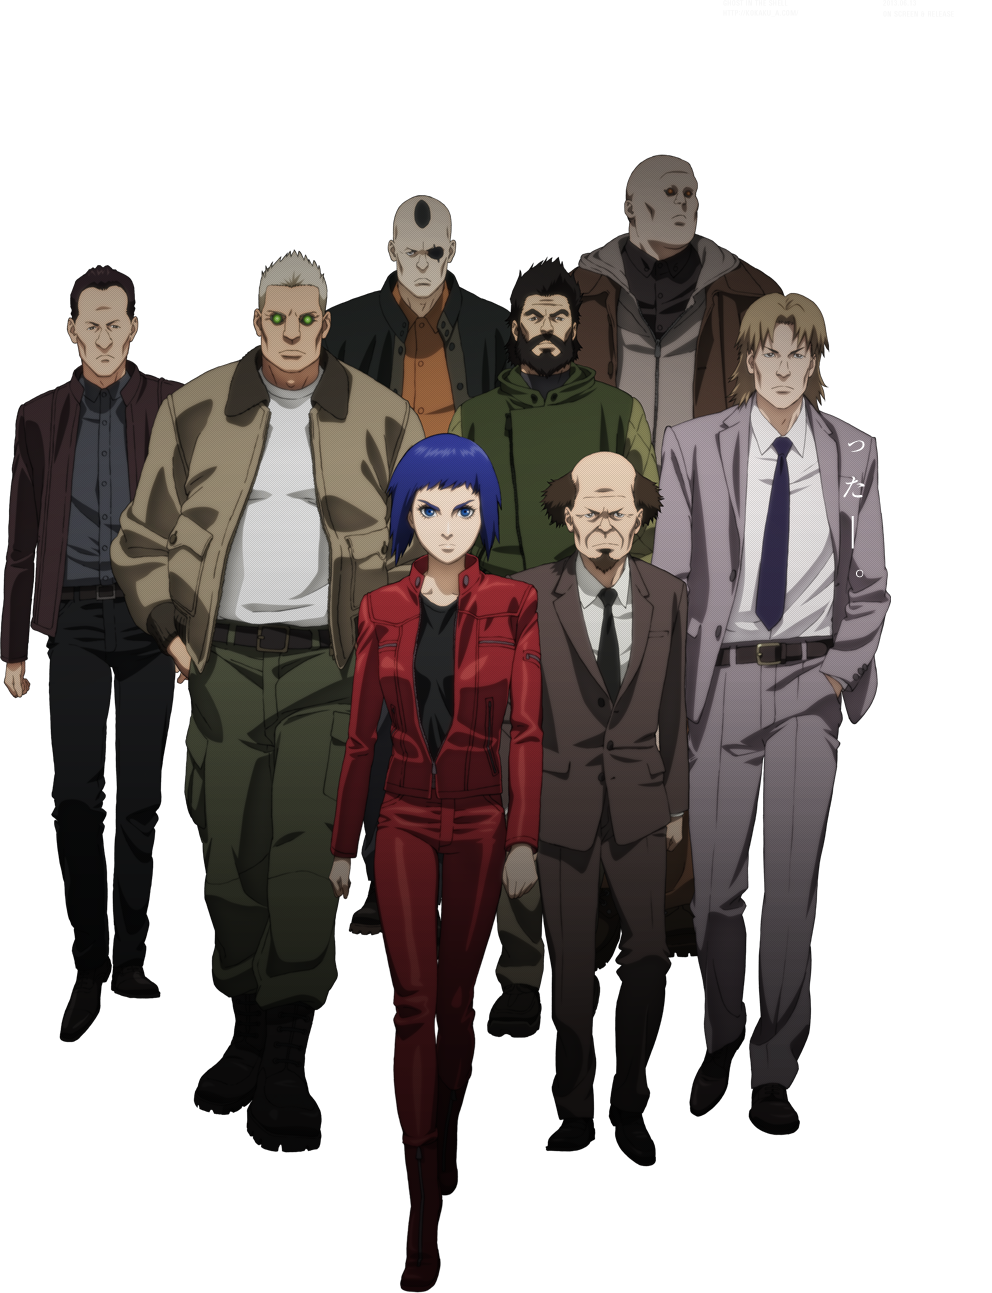 insanecyclone anime best could motoko still though style shirow version some alone 2013 arise shell yeah stand ghost redesign complex